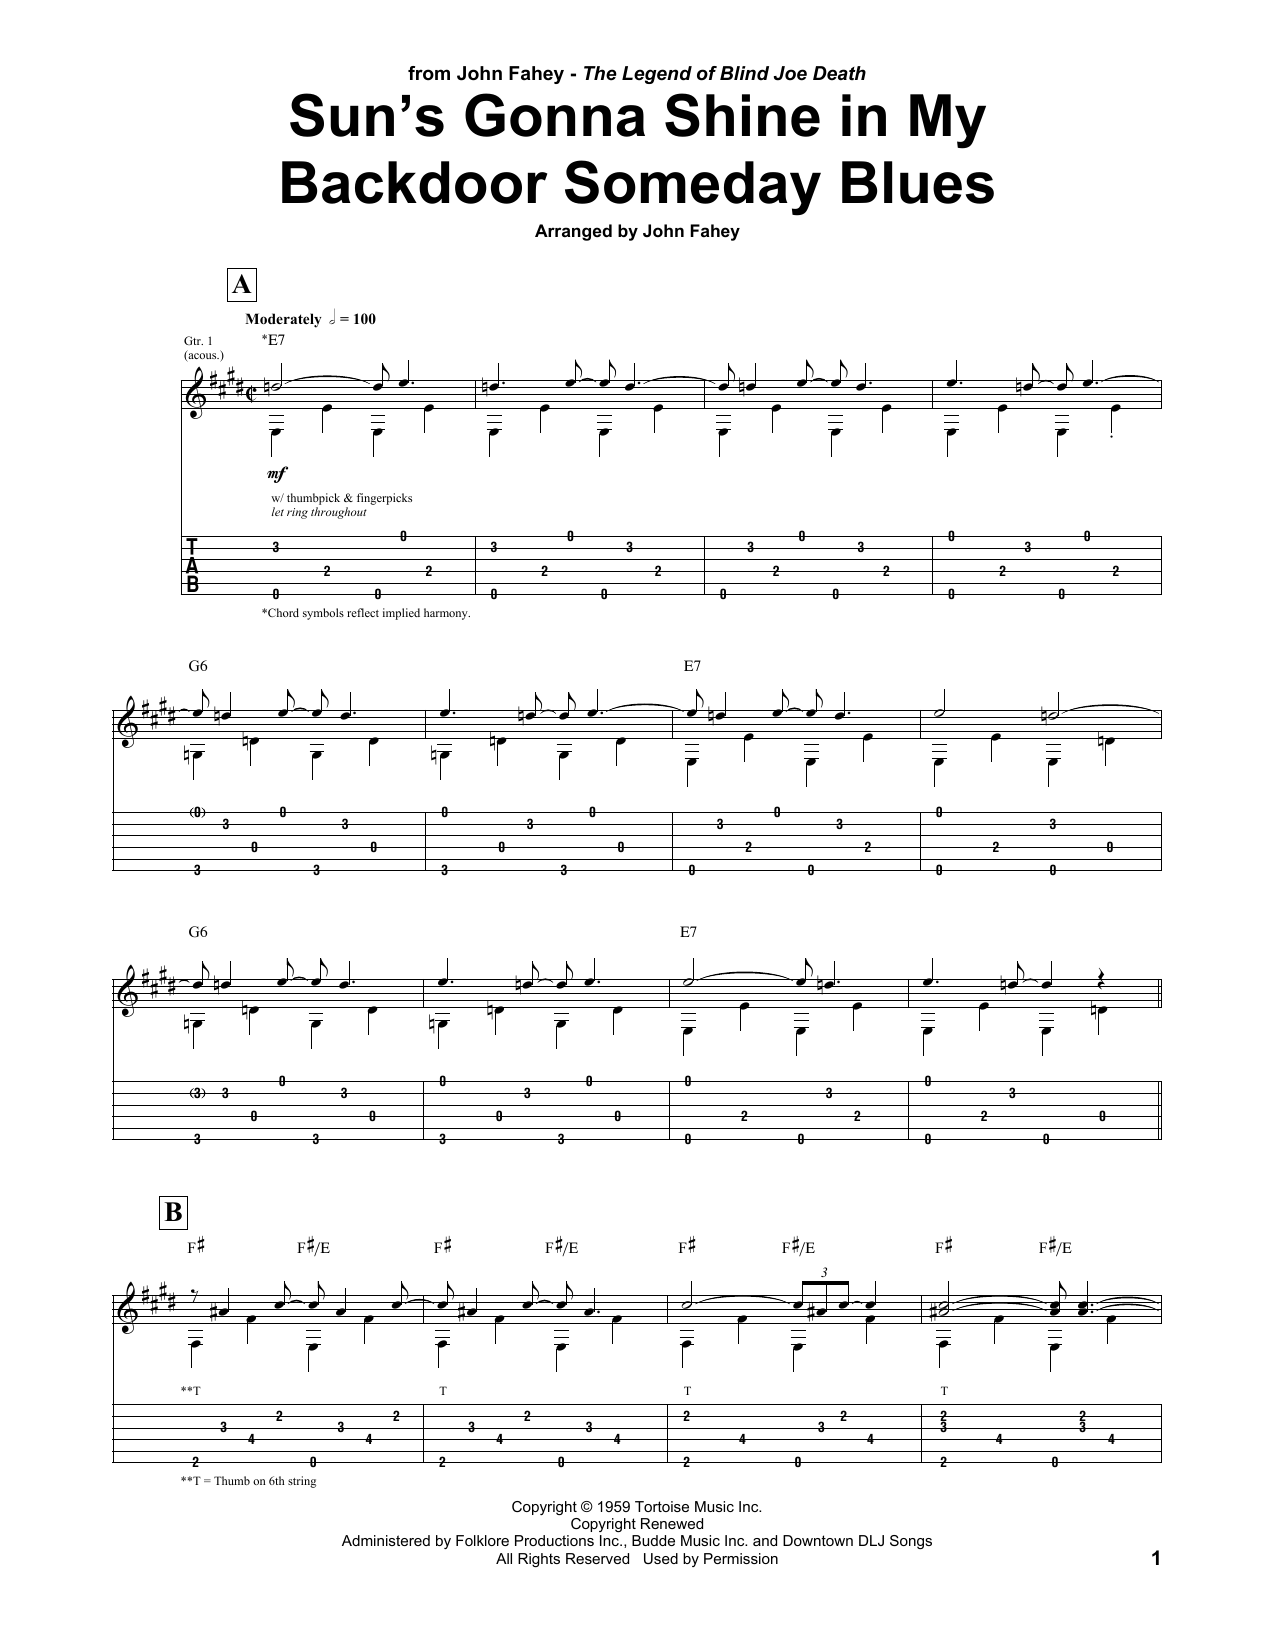 Suns Gonna Shine In My Backdoor Someday Blues John Fahey Guitar Tab